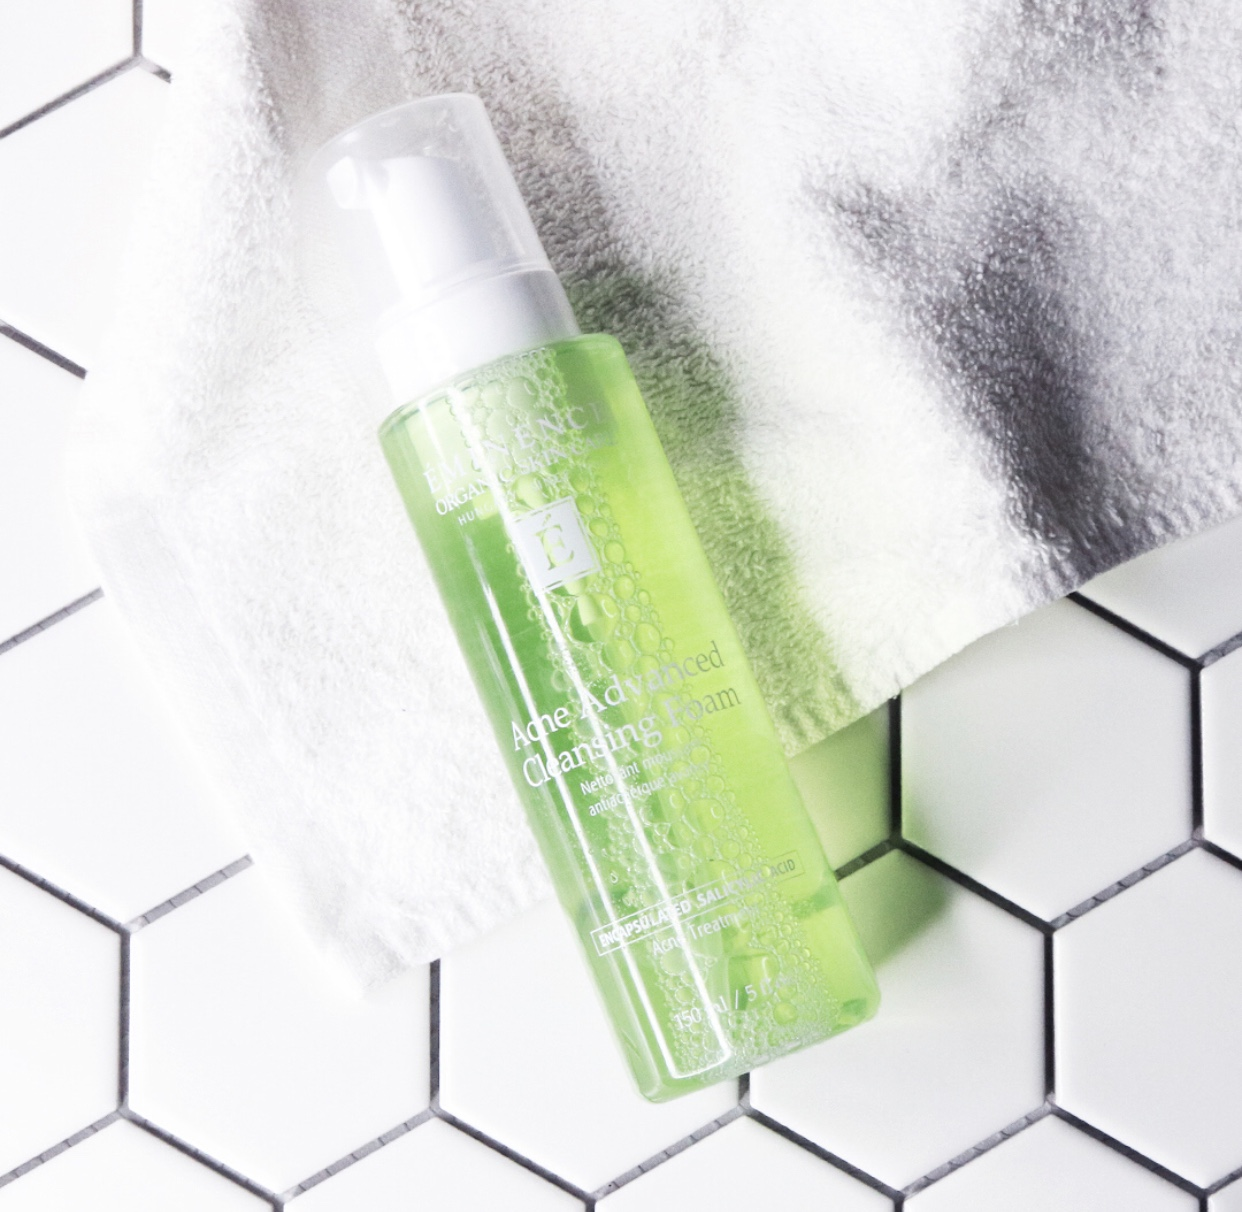 Step 1: Cleanse - Acne Advance Cleansing Foam gently soothes and tones to address uneven skin tone, while clearing blocked pores.